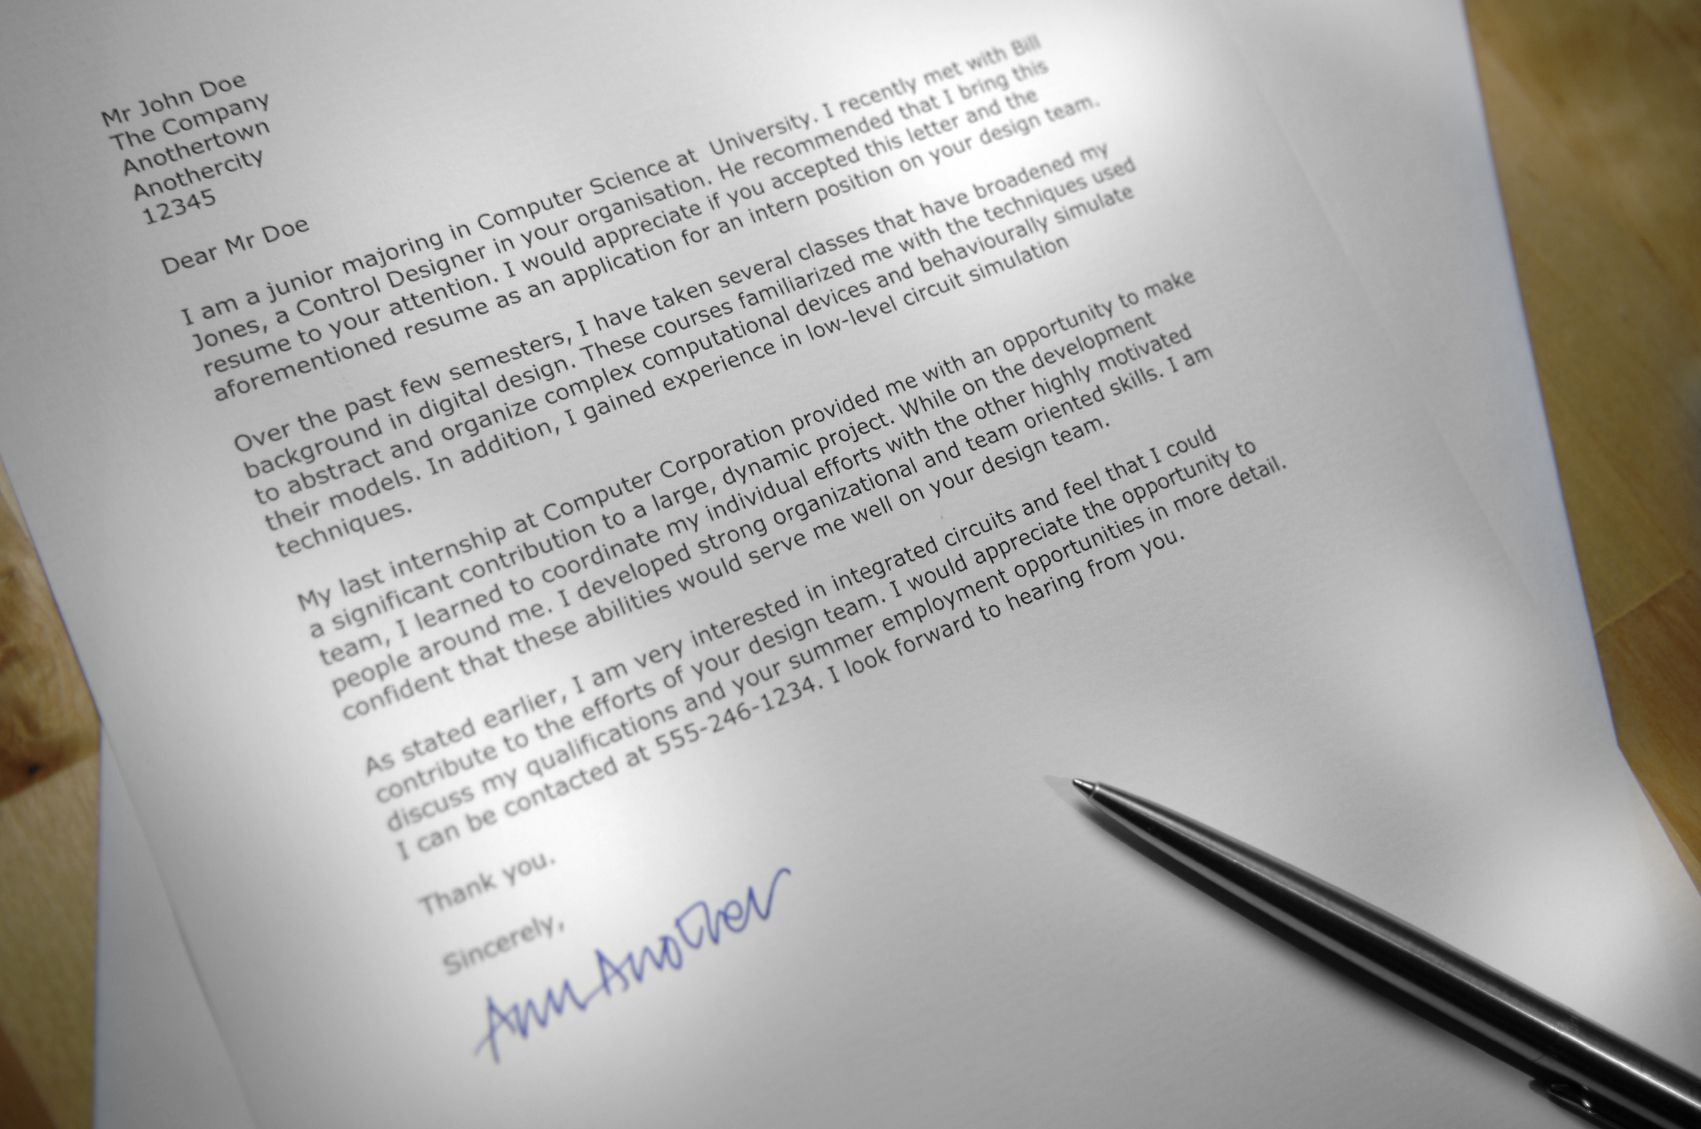 Formatting Tips for Professional Cover Letters